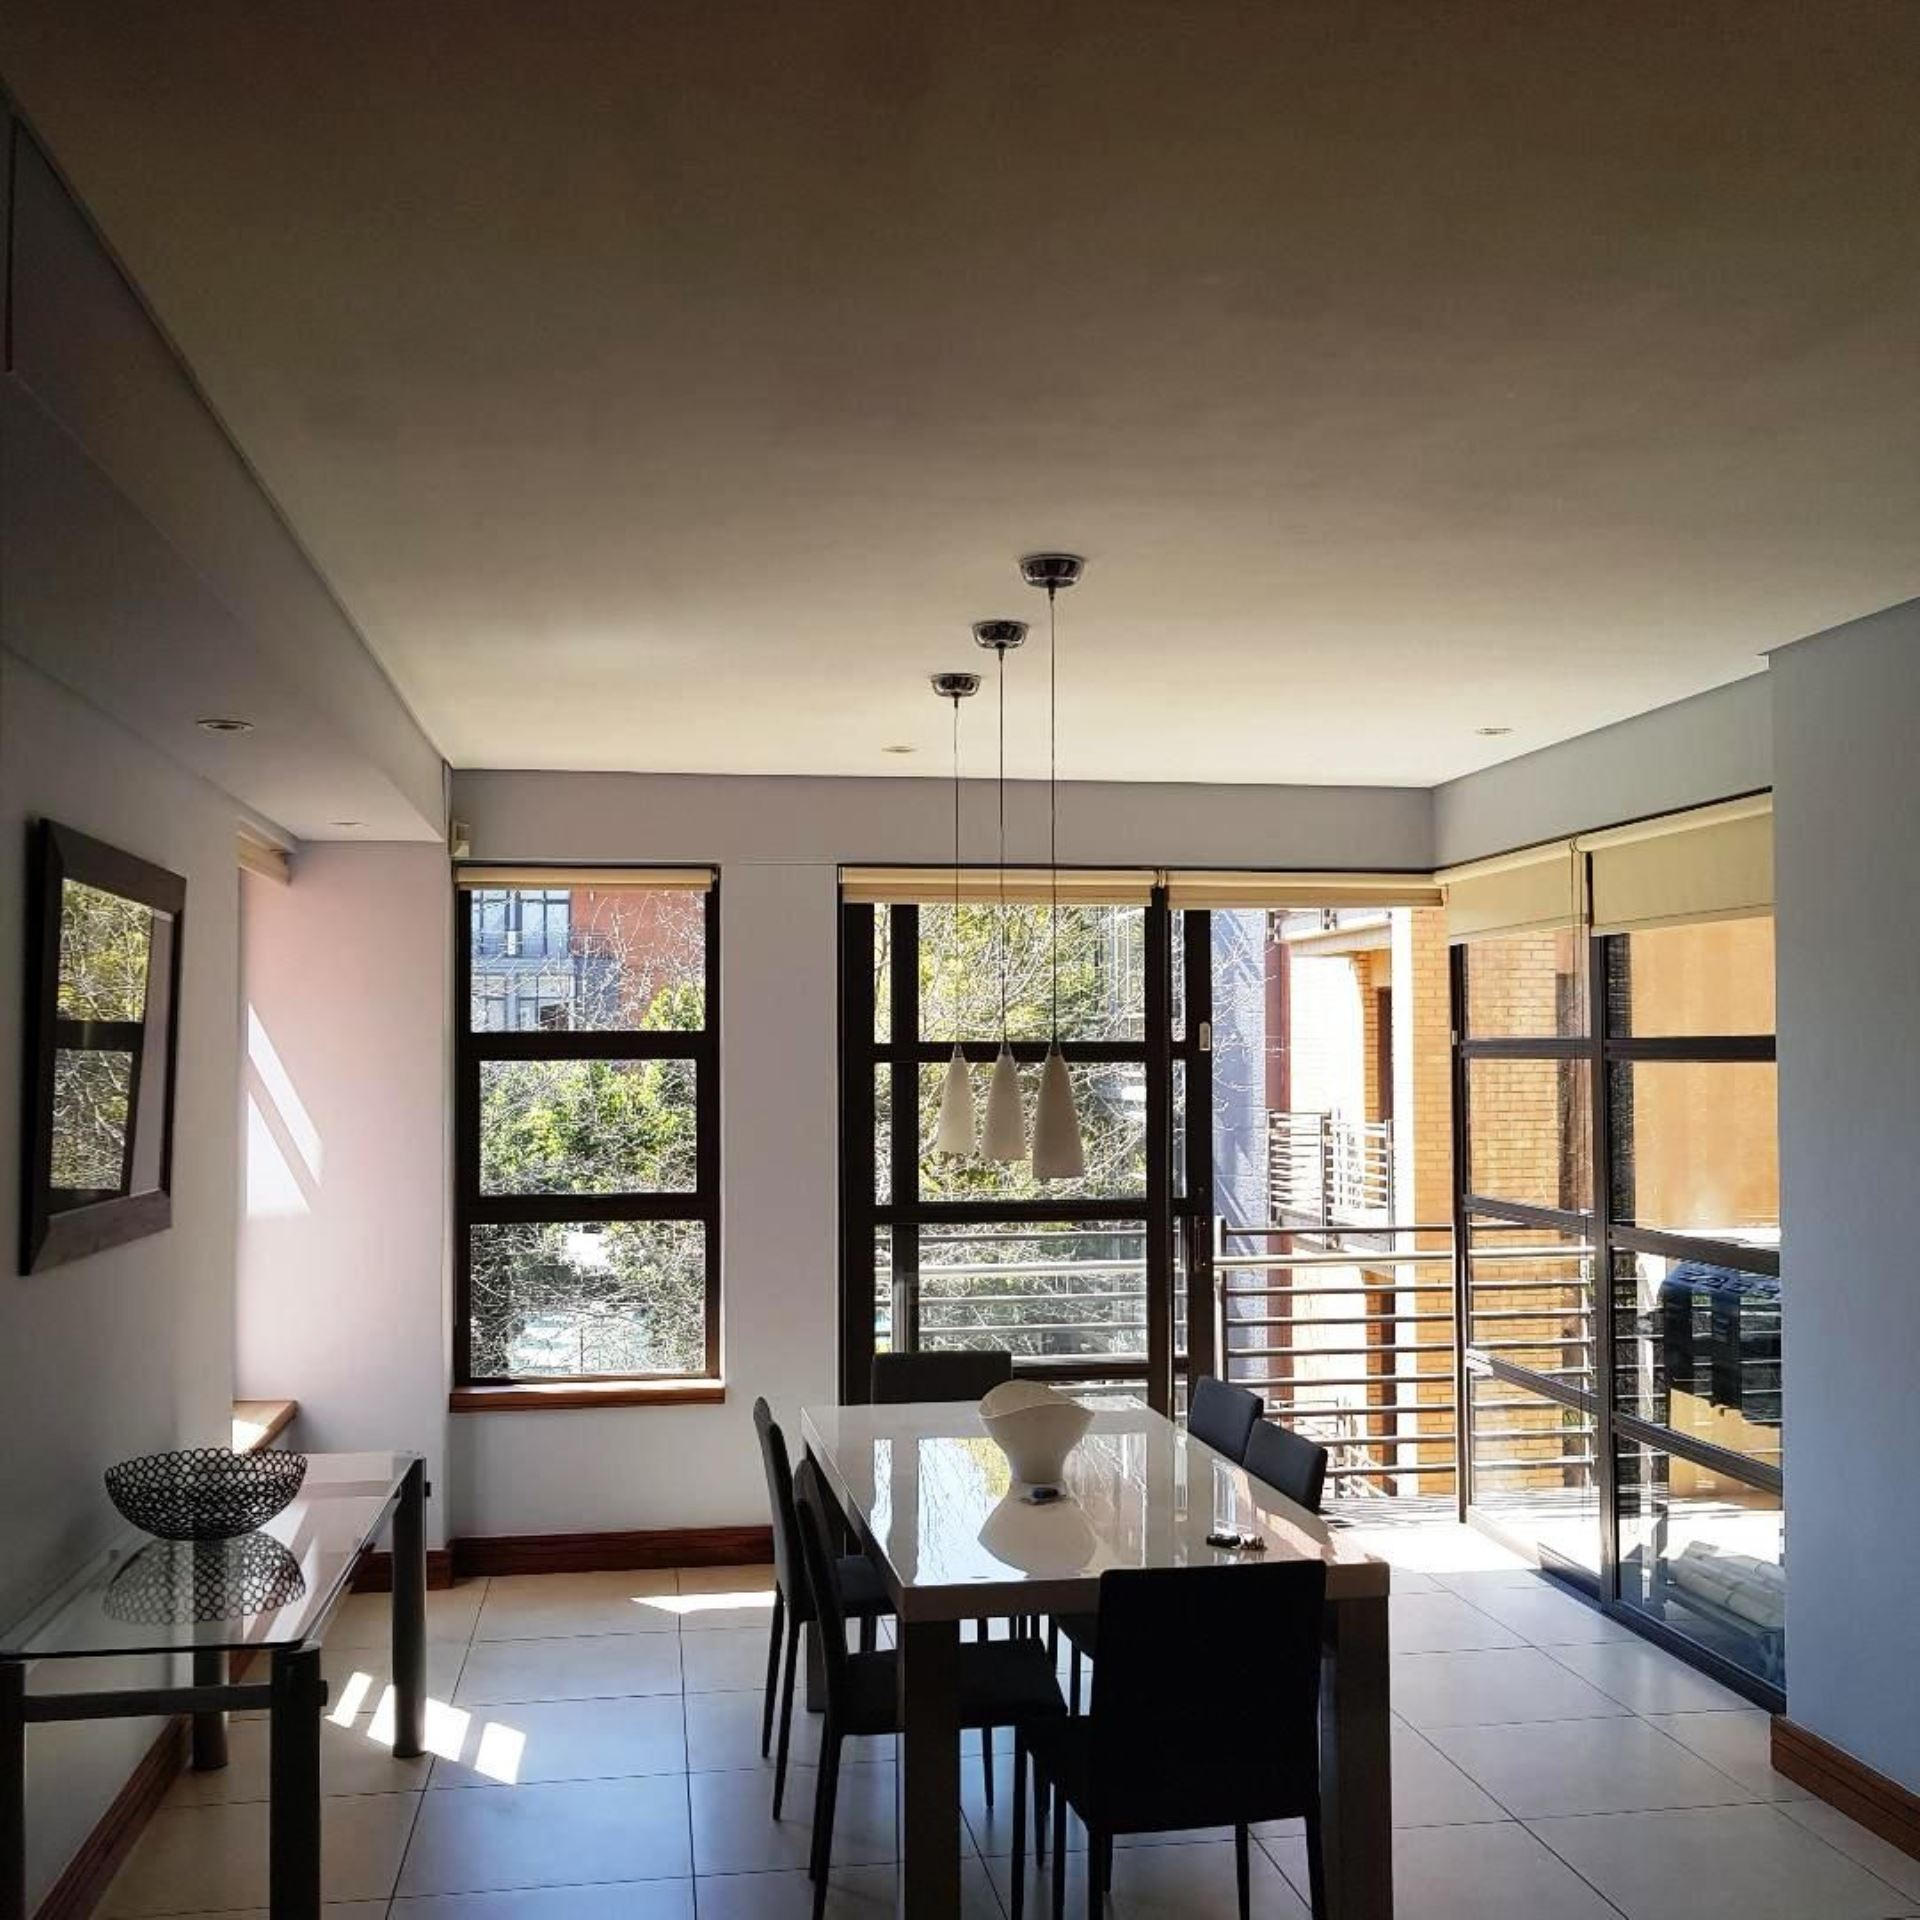 Apartments For Sale Johannesburg: Apartment Rental Monthly In MELROSE ARCH